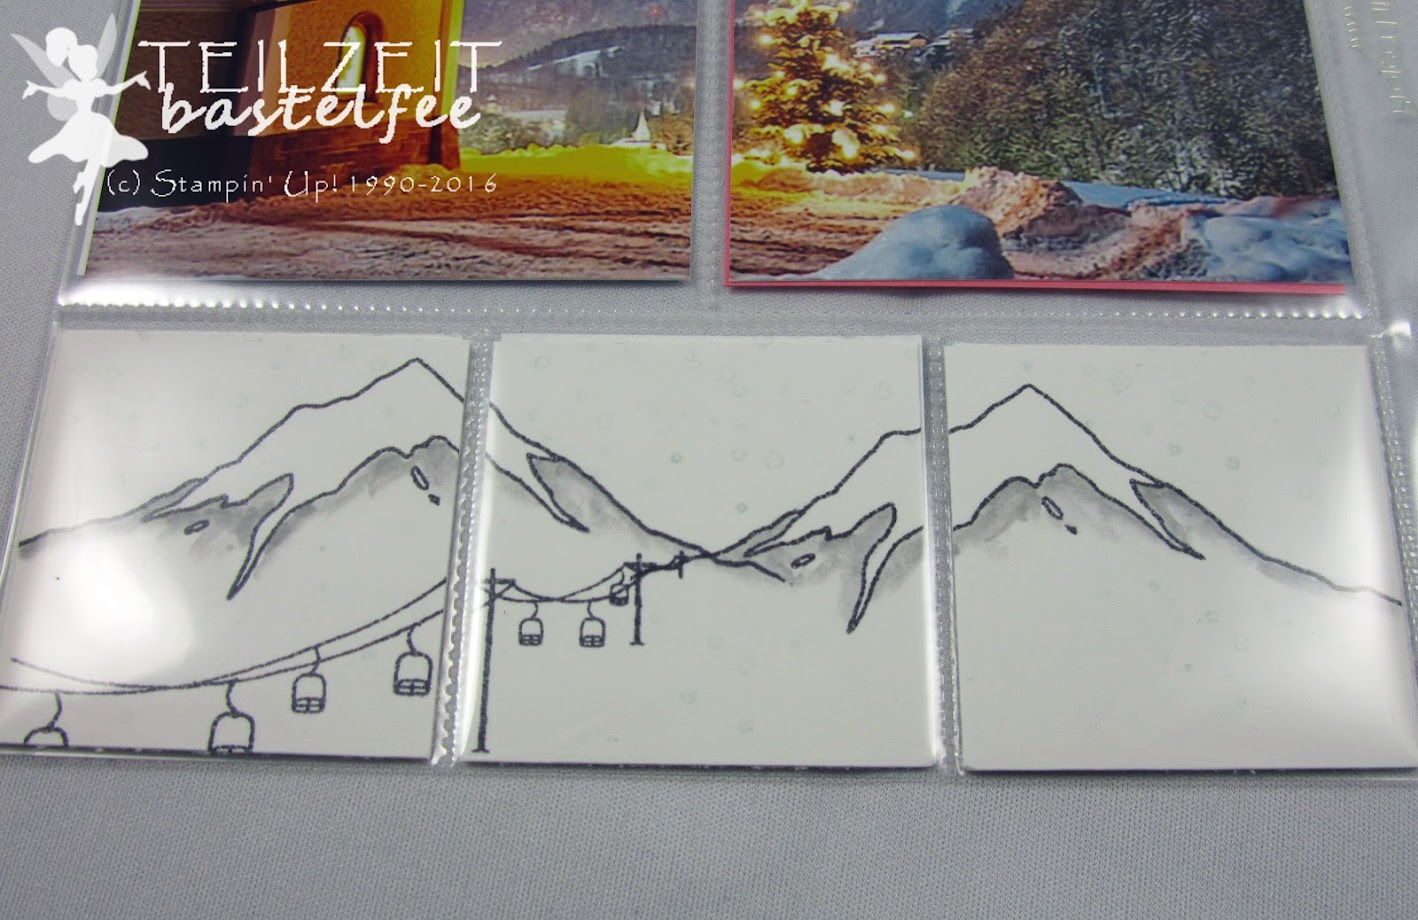 Stampin' Up! – In{k}spire_me #278, Weihnachten, Christmas, Mountain Adventure, Kling Glöckchen, Jingle all the Way, Project Life, Layout, Hello December